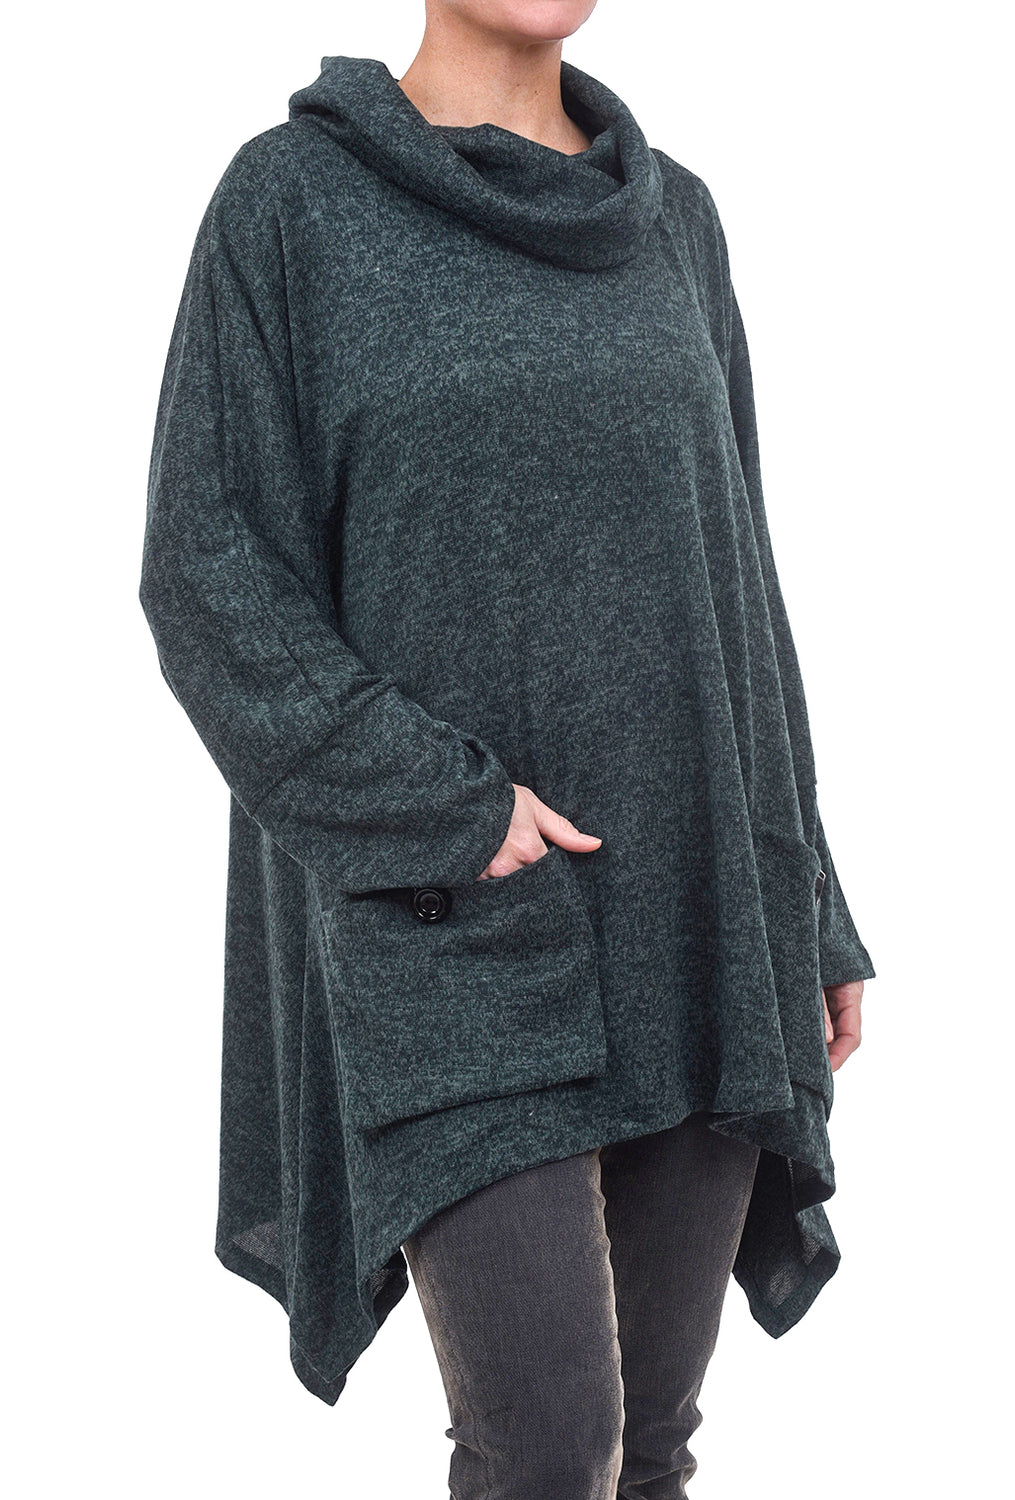 Transparente Clothing Marled Dolman Pocket Top, Pine Green One Size Green